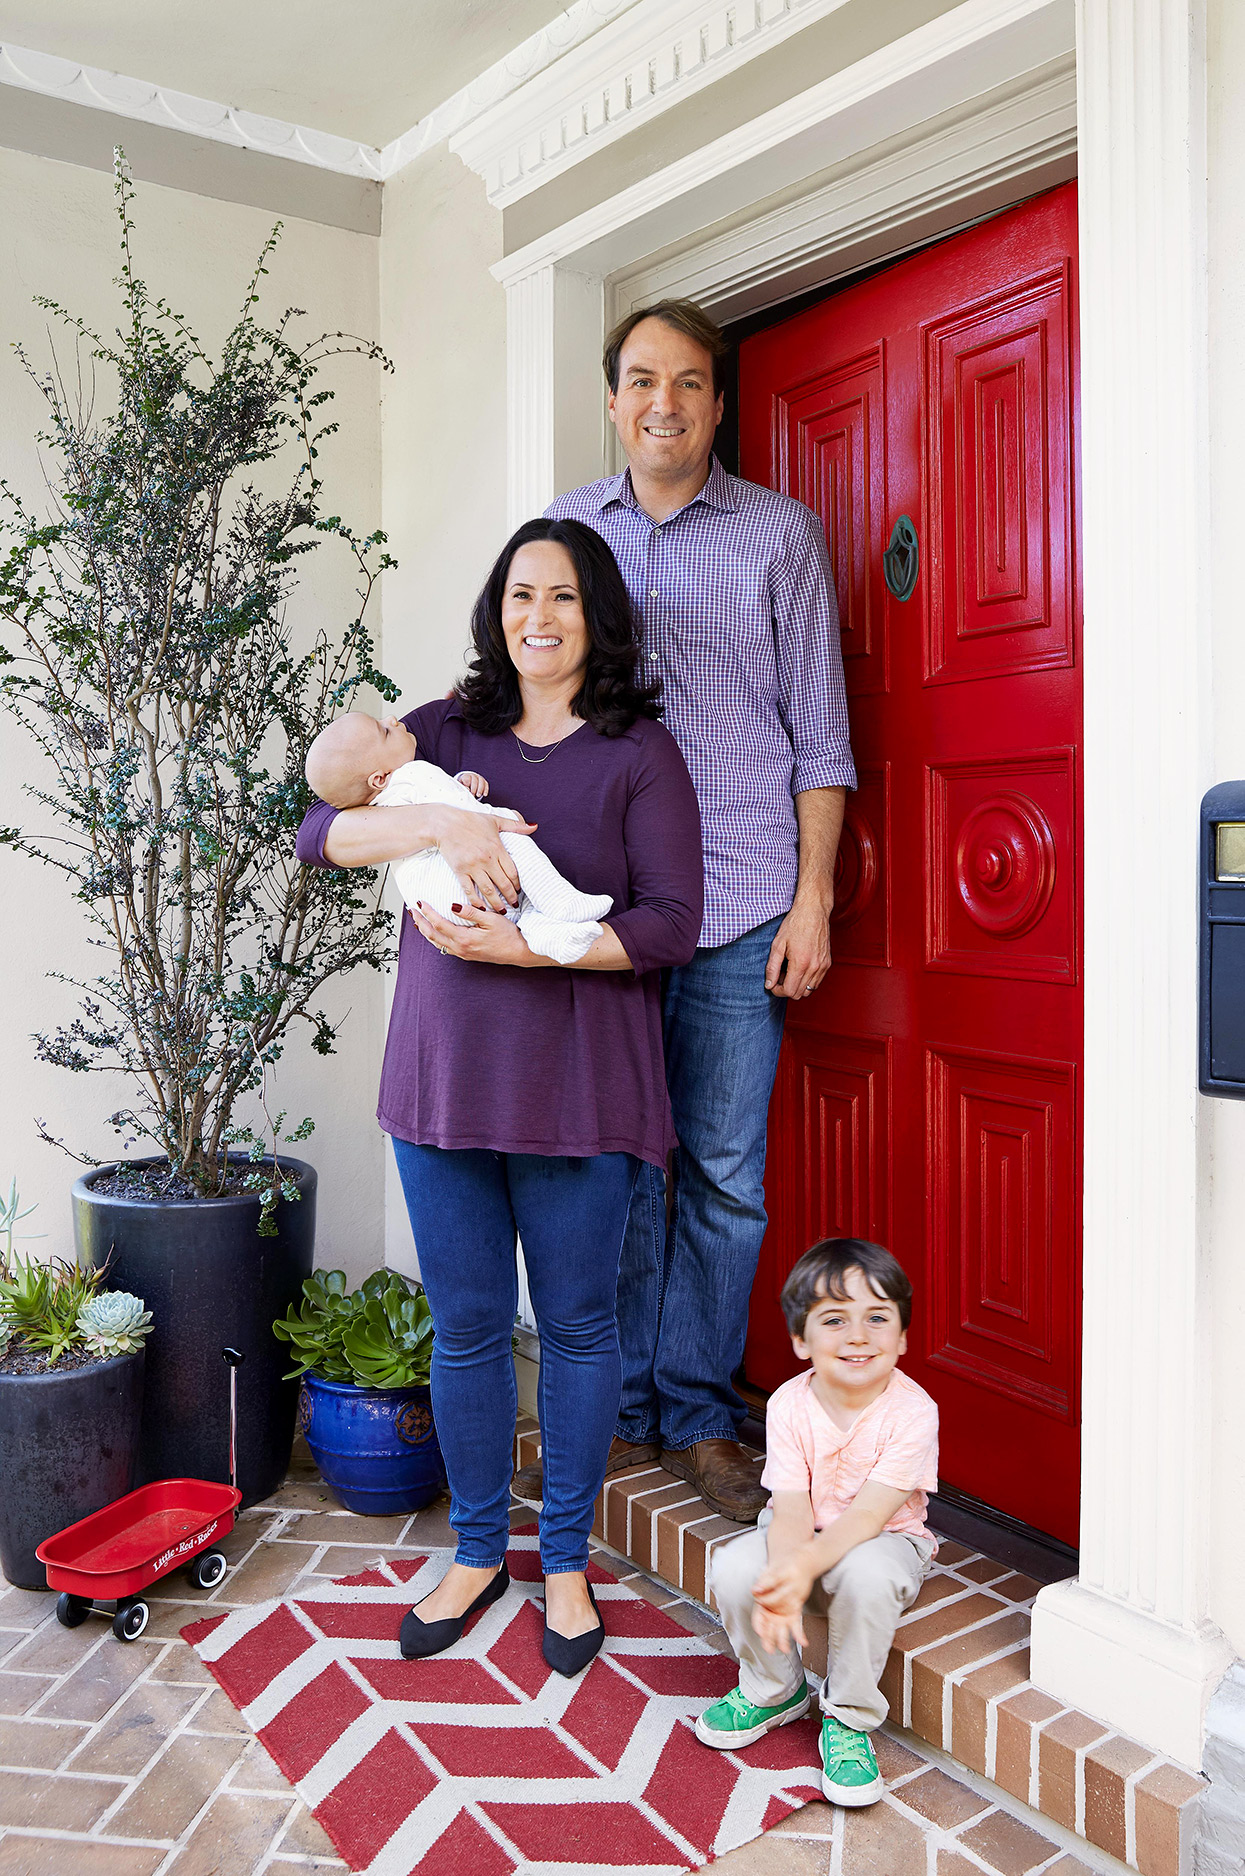 family of four portrait outside house in front of red exterior door